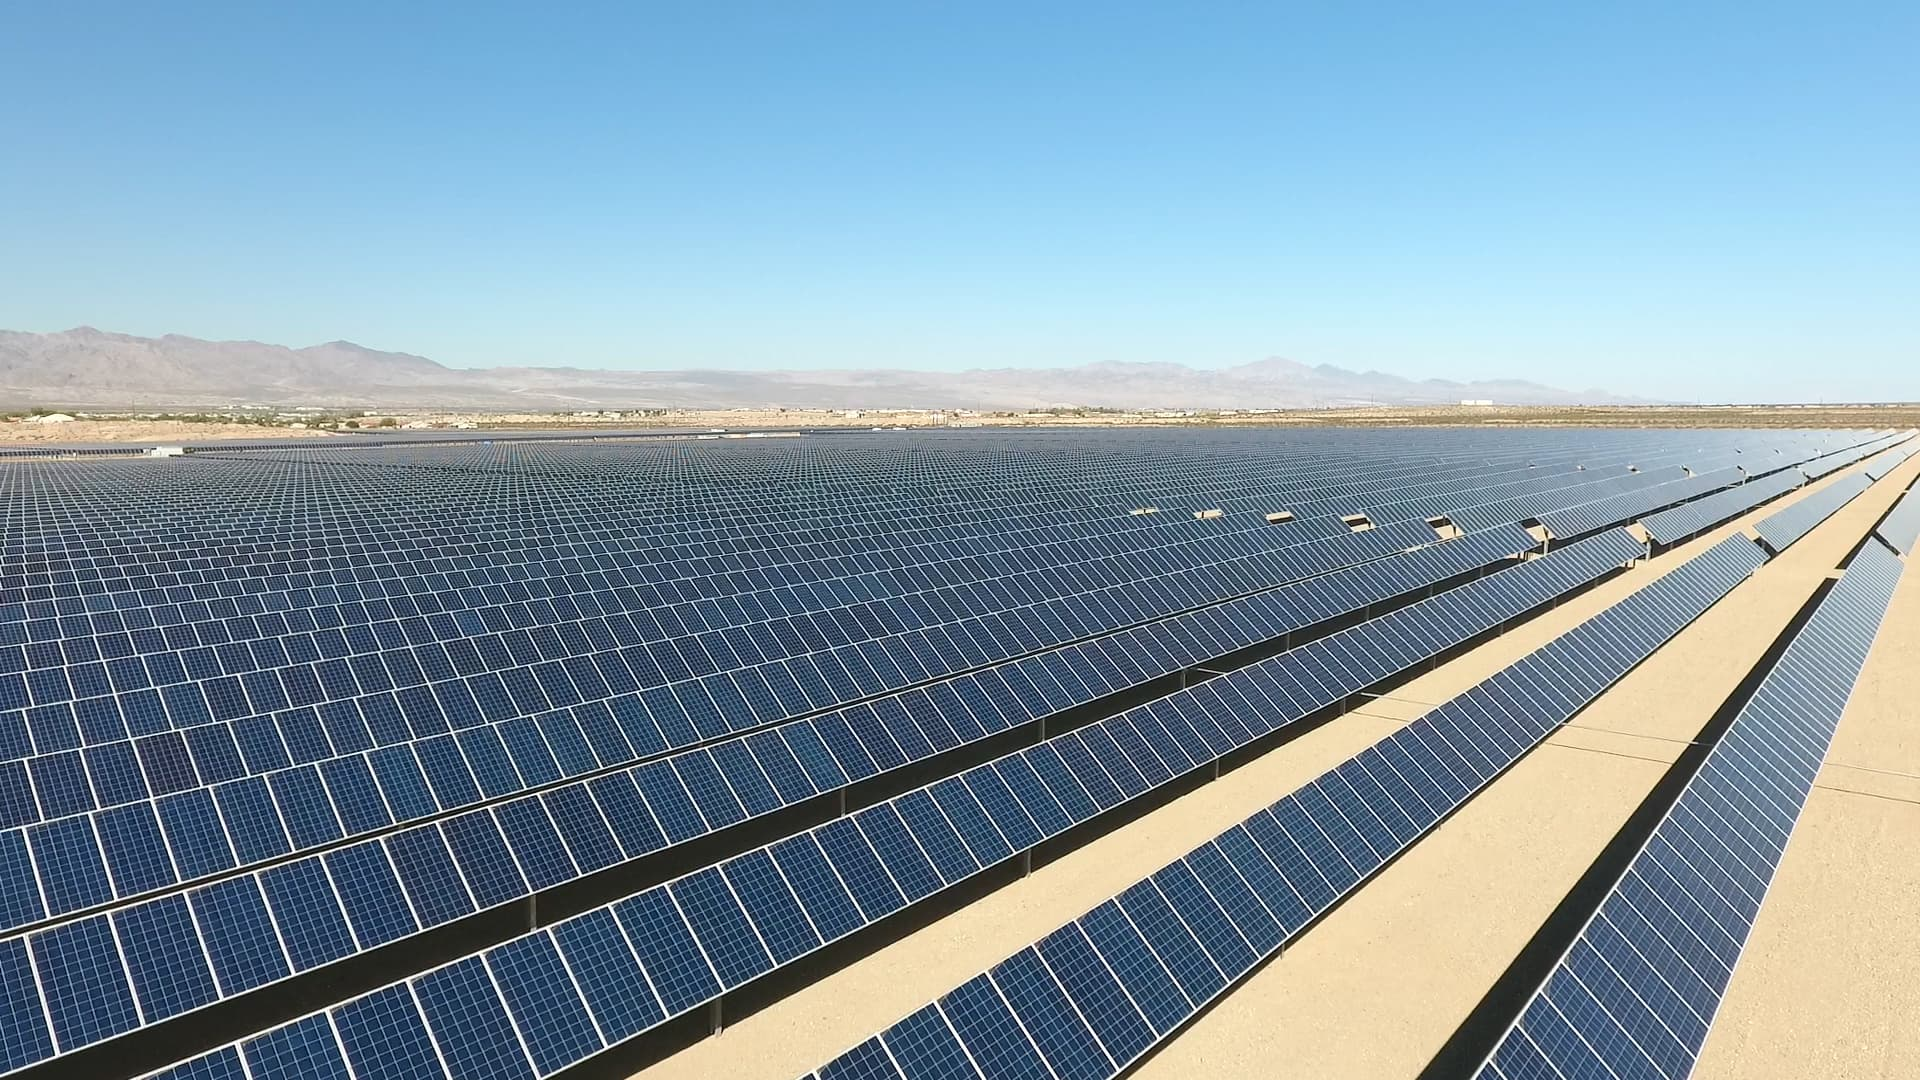 Constellation Constellation Builds 13.8 MW Solar Project For Arizona Co-op